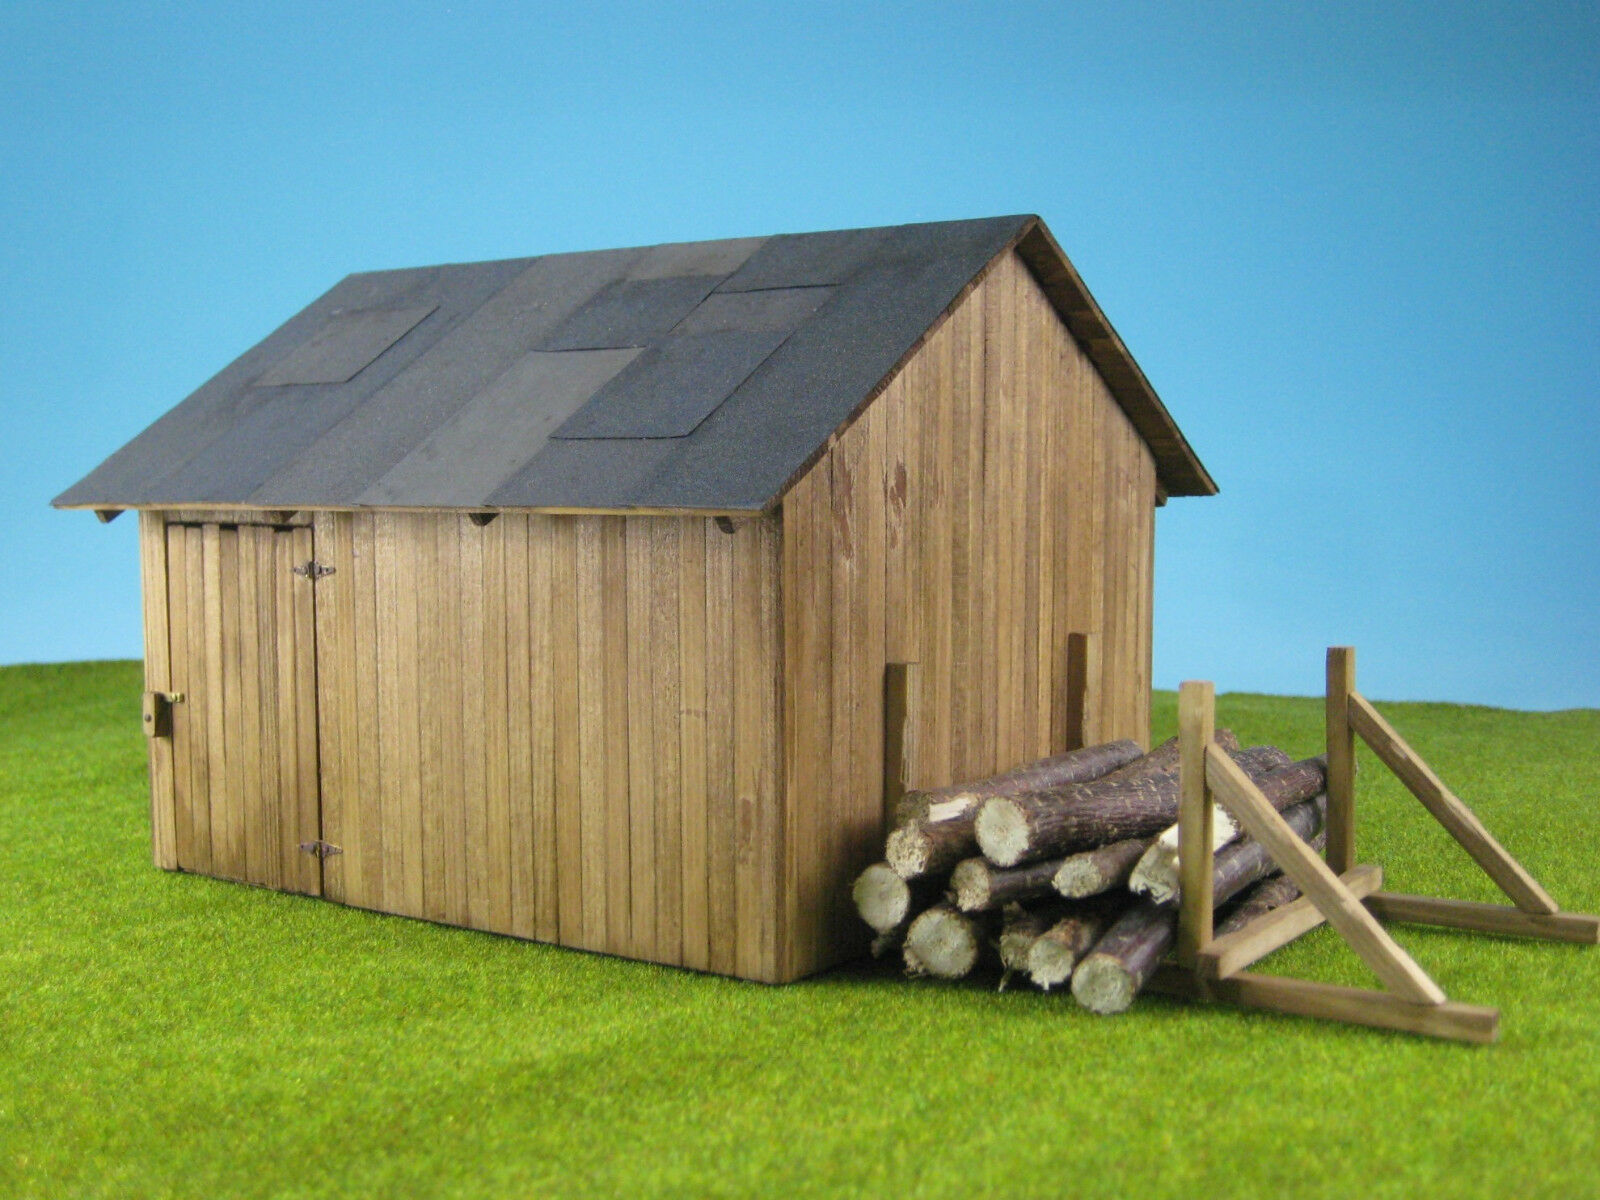 44959-hut with wood storage space in 1 43 Scale (Gauge 0)